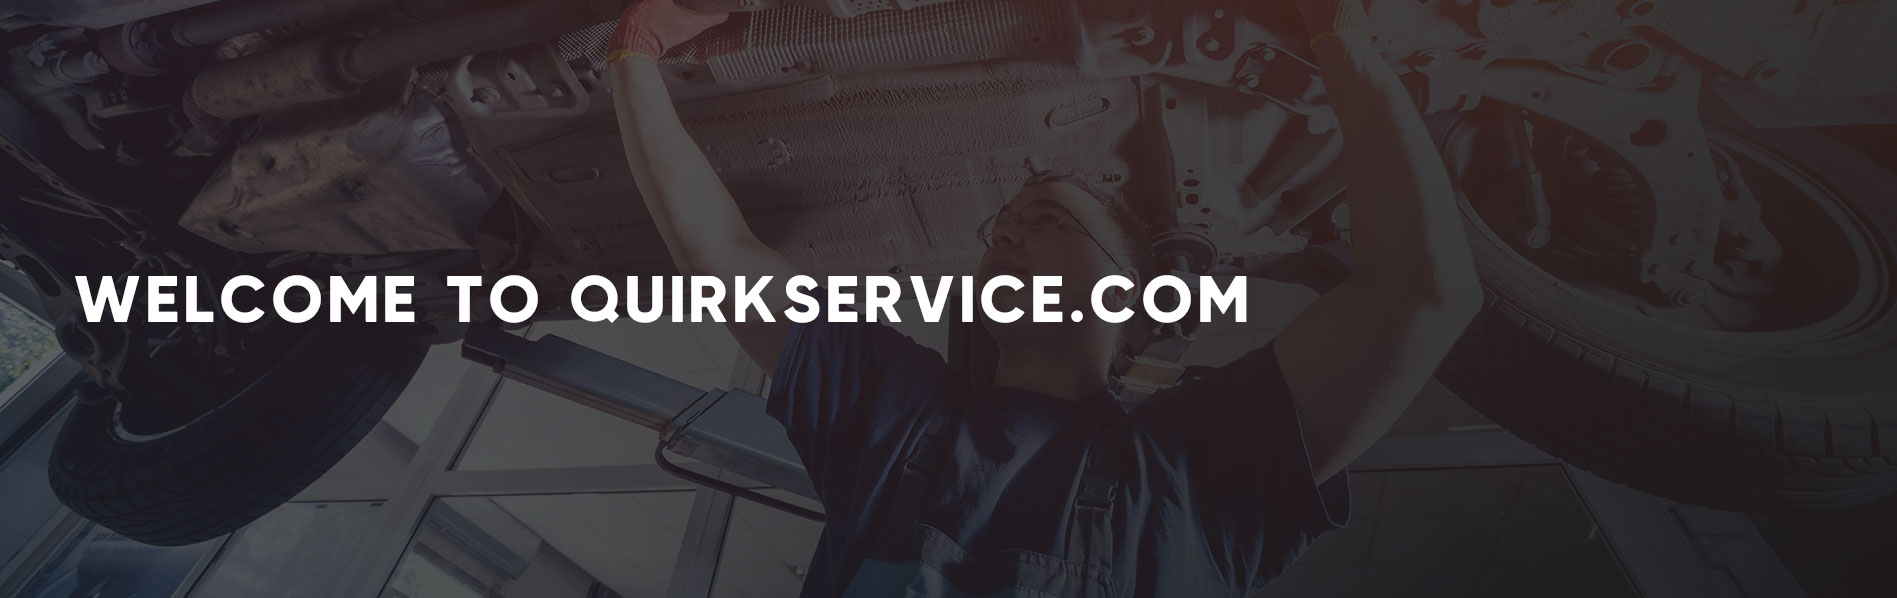 Welcome to QuirkService.com